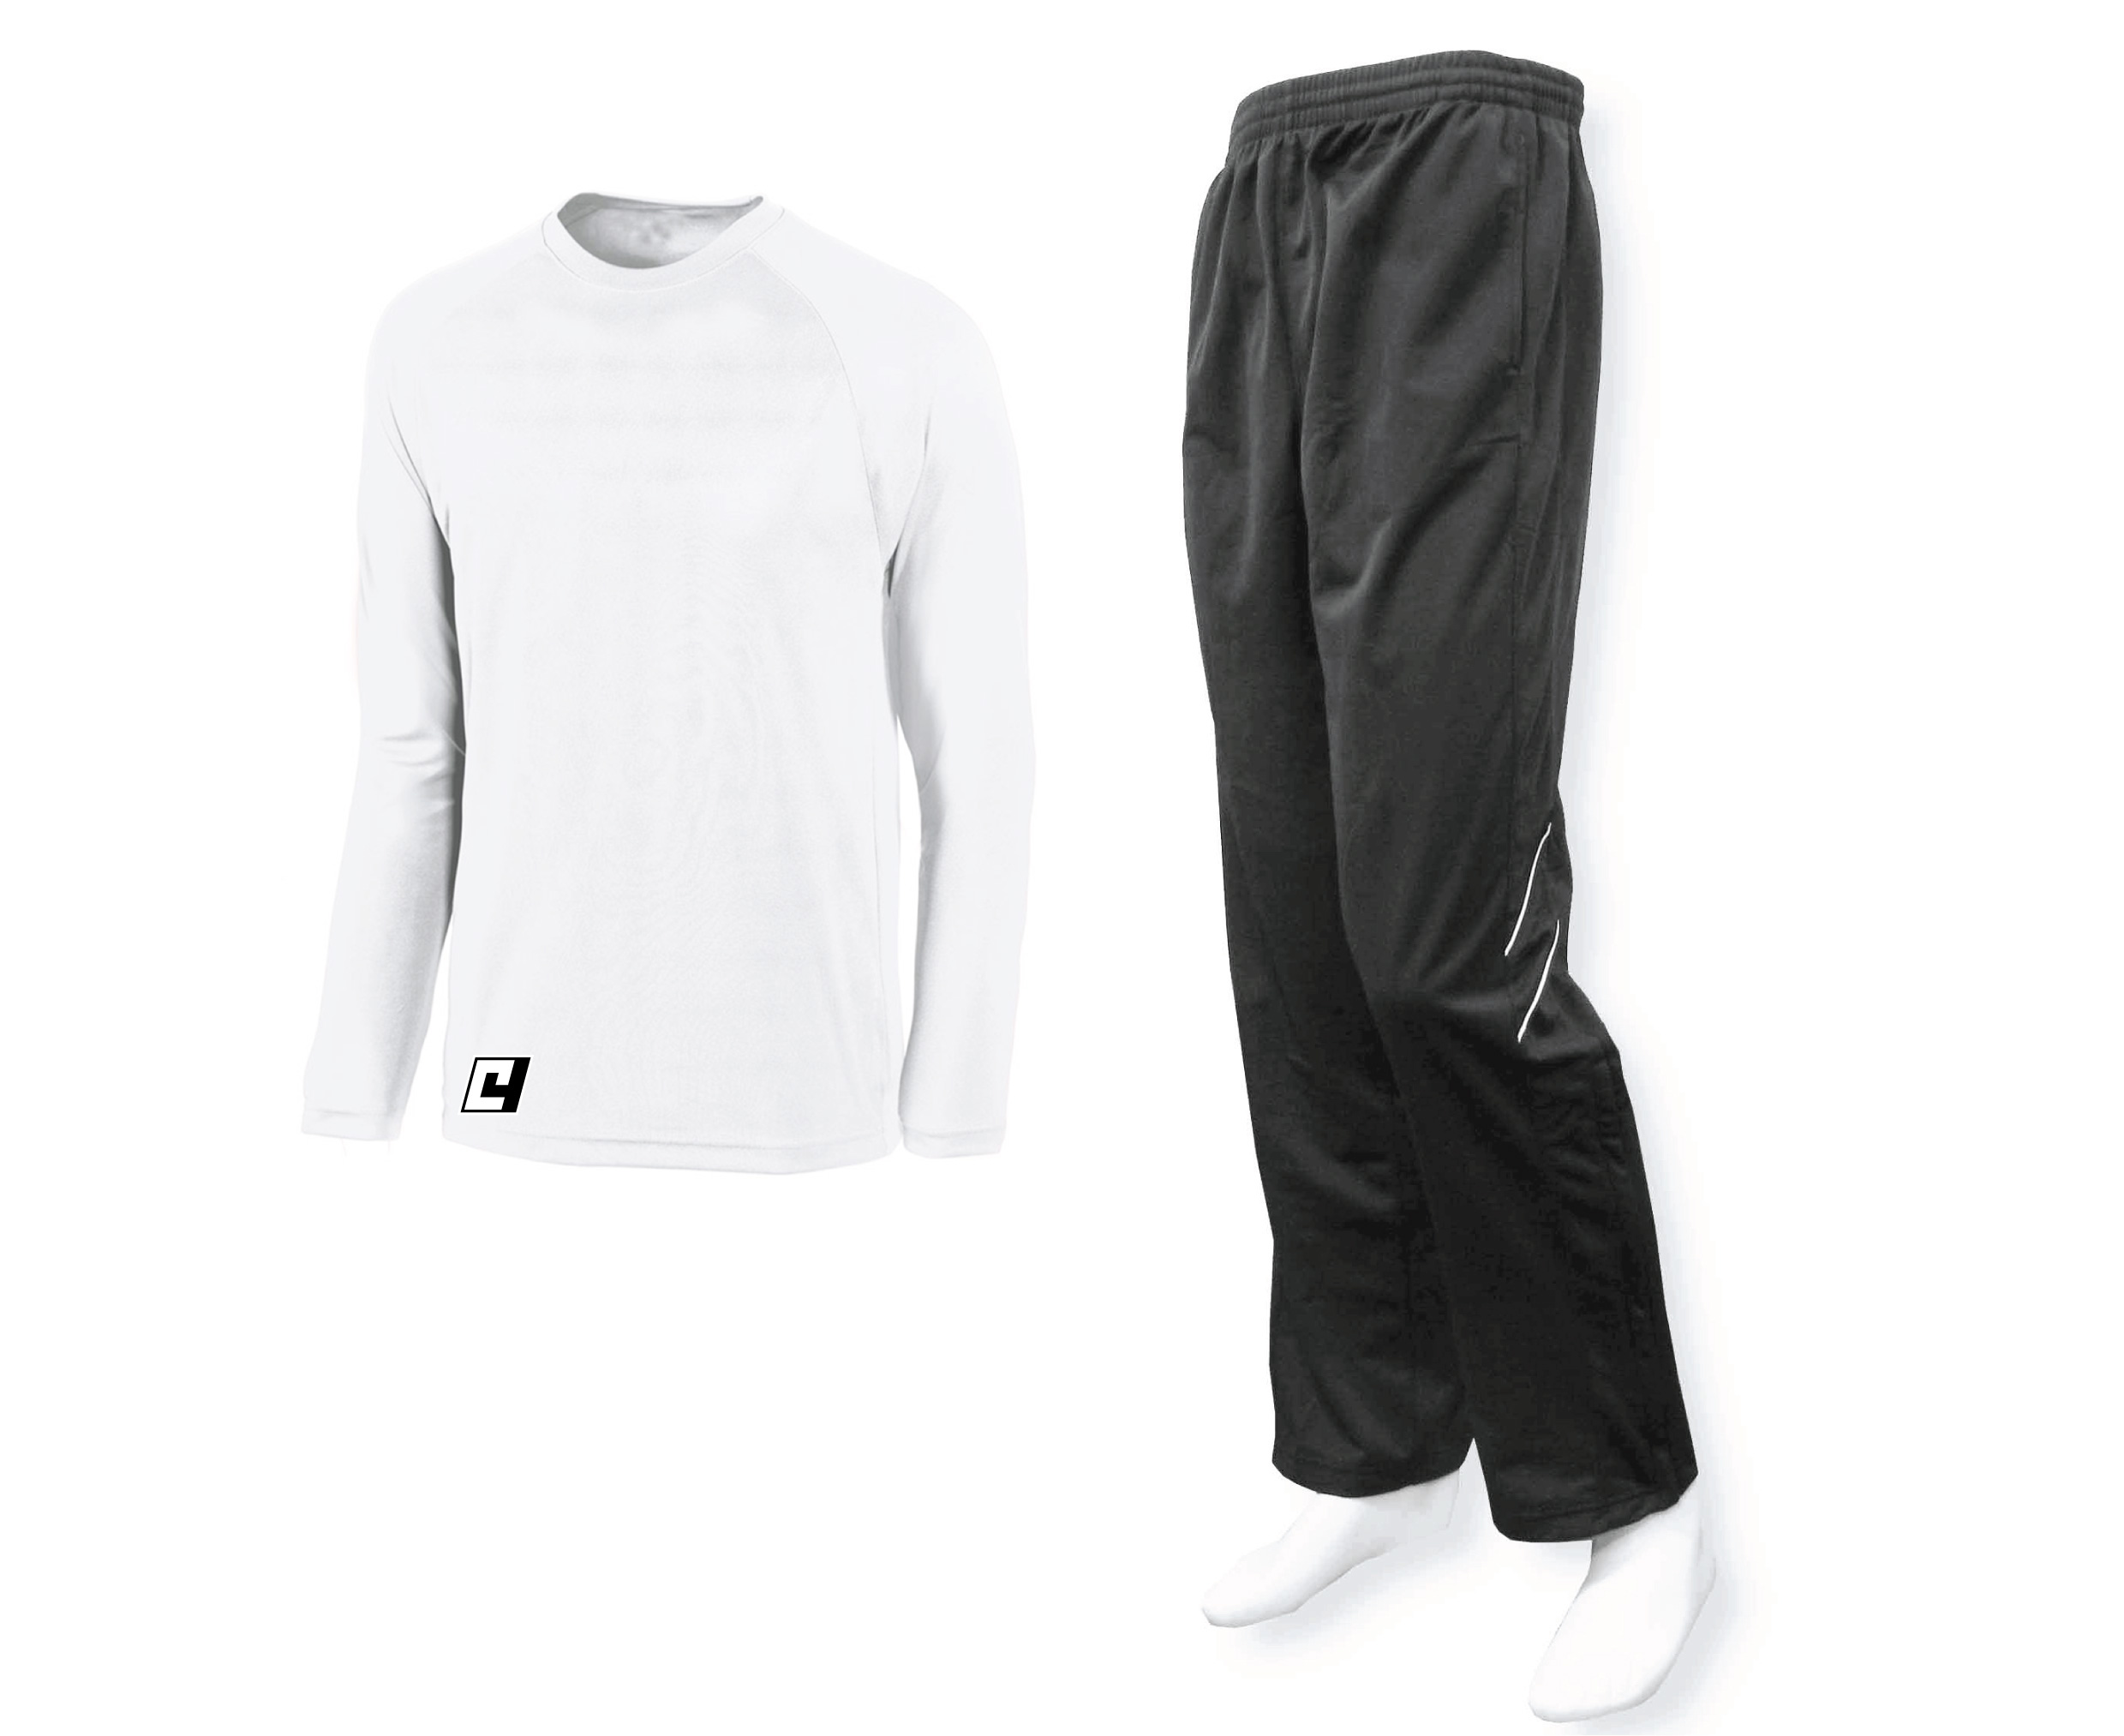 long sleeve basketball shooting shirt in white with black track pants